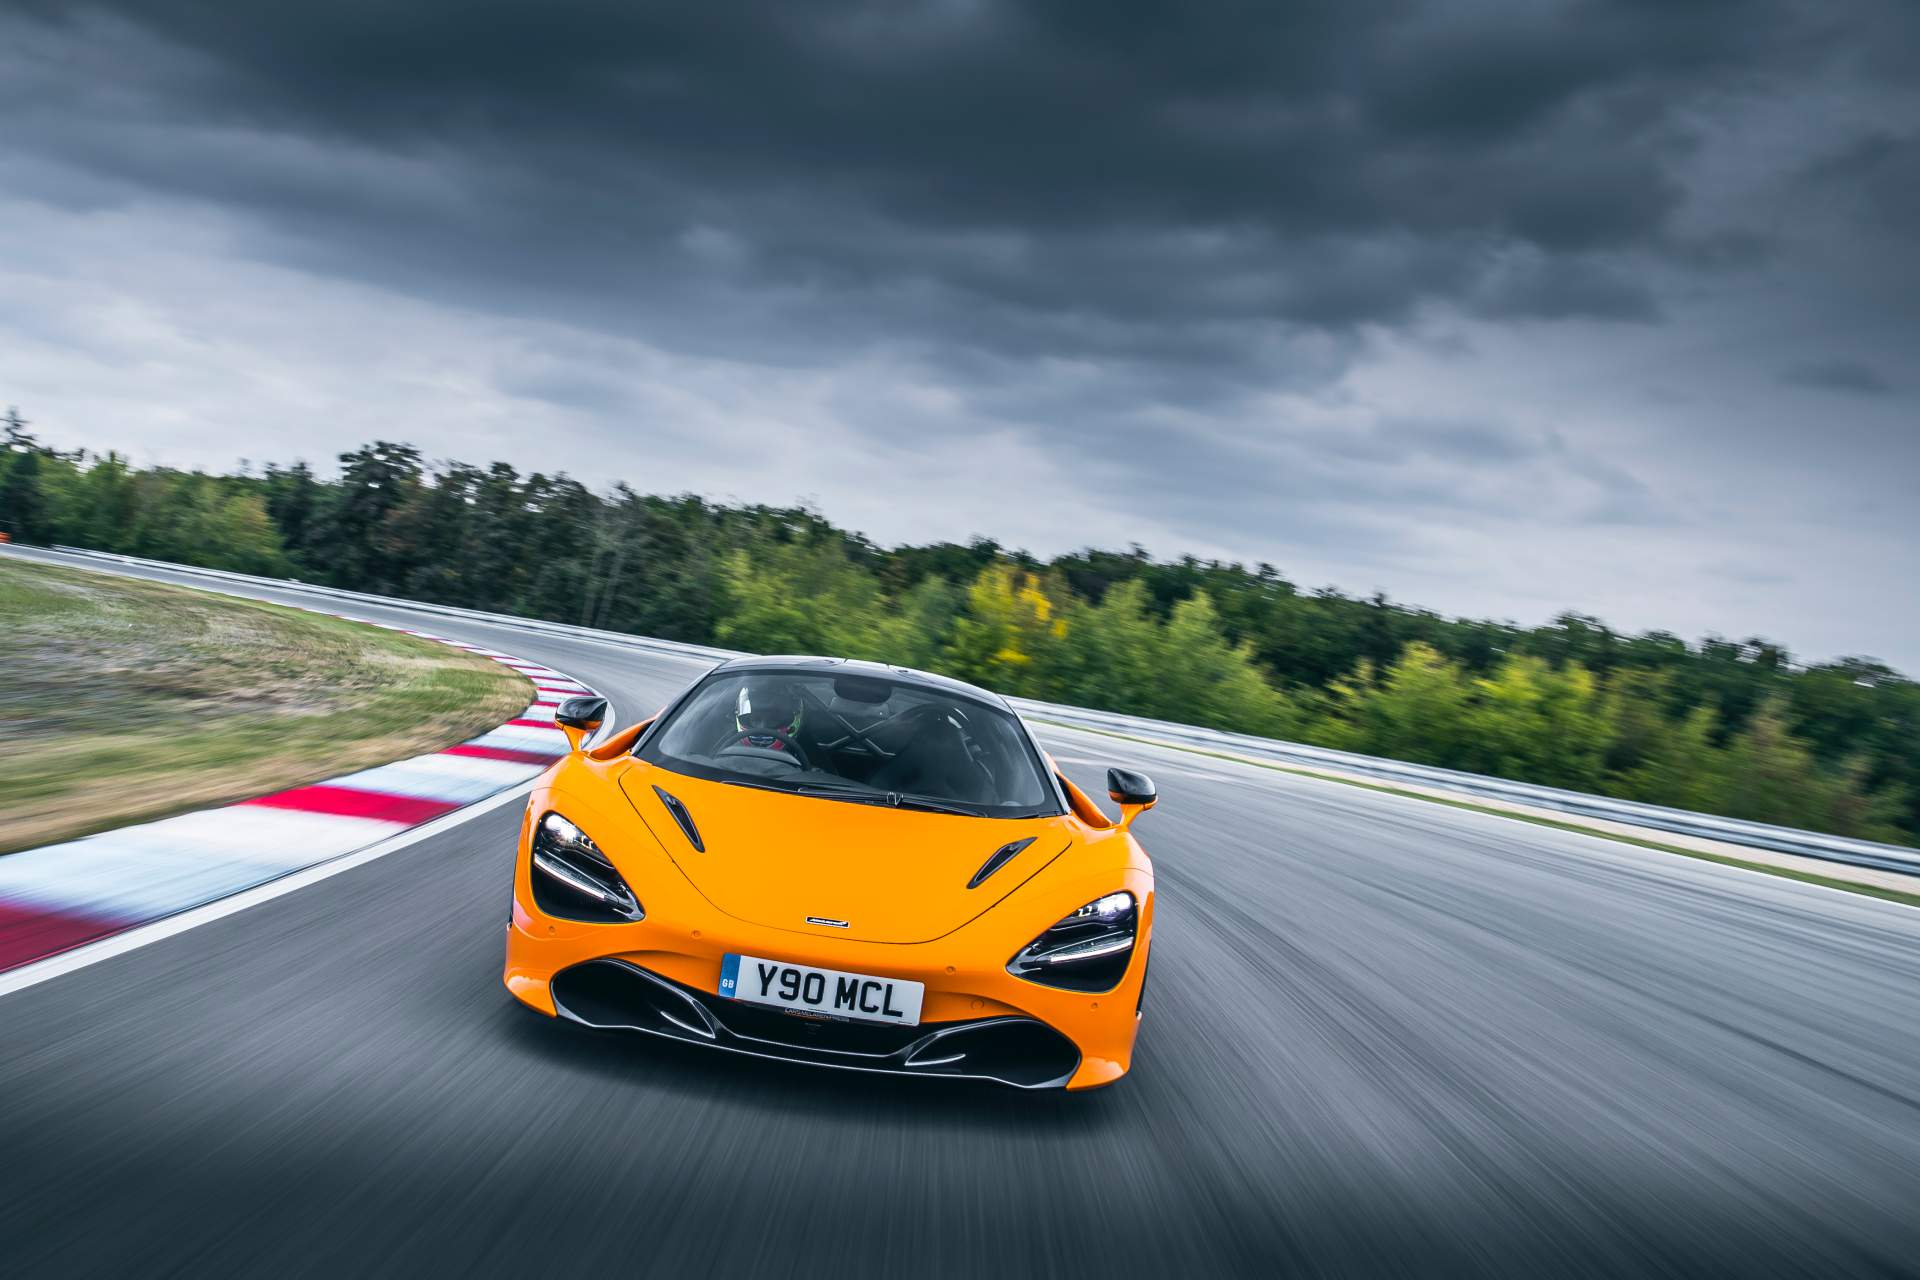 2019 McLaren 720S Track Pack Wallpapers 12 HD Images   NewCarCars 1920x1280